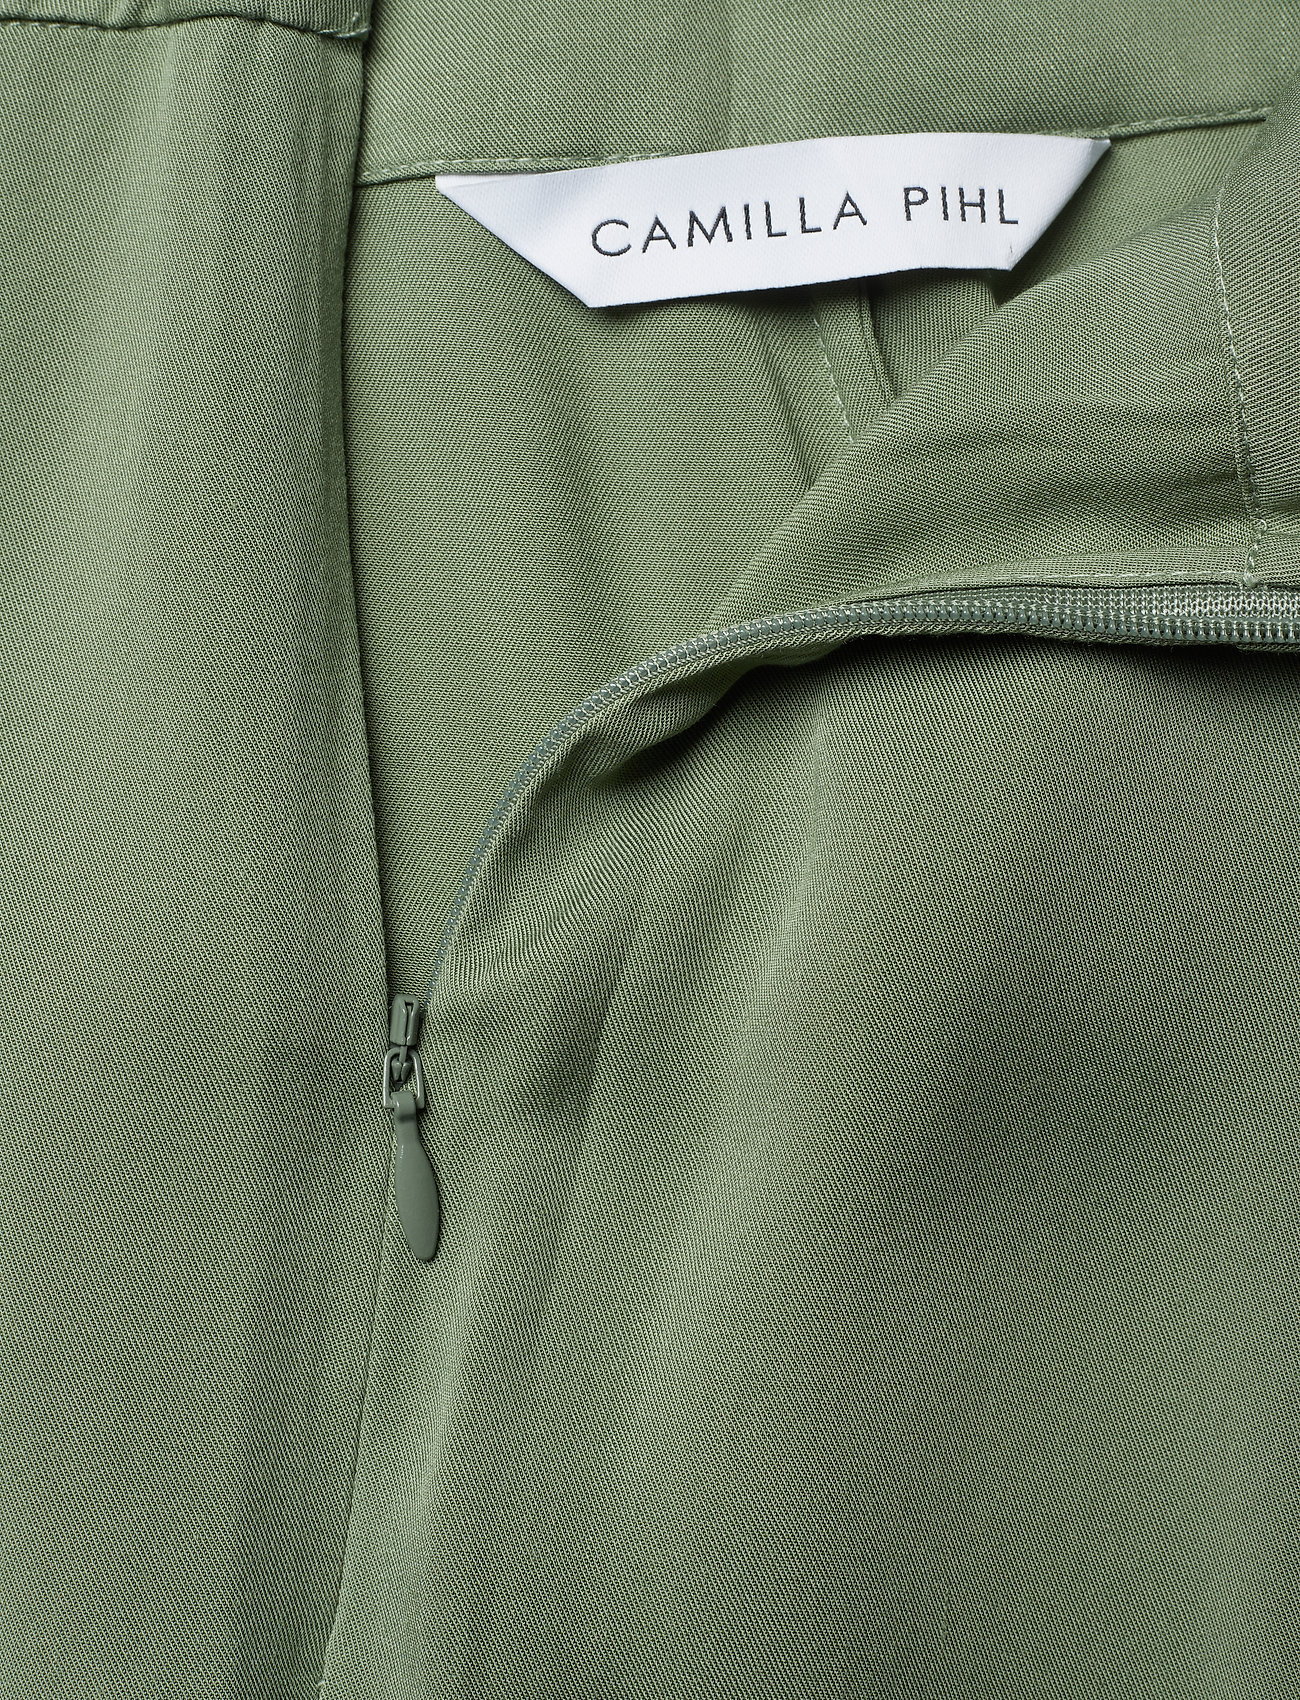 Fancy Trousers (Washed Army) (639.60 kr) - Camilla Pihl